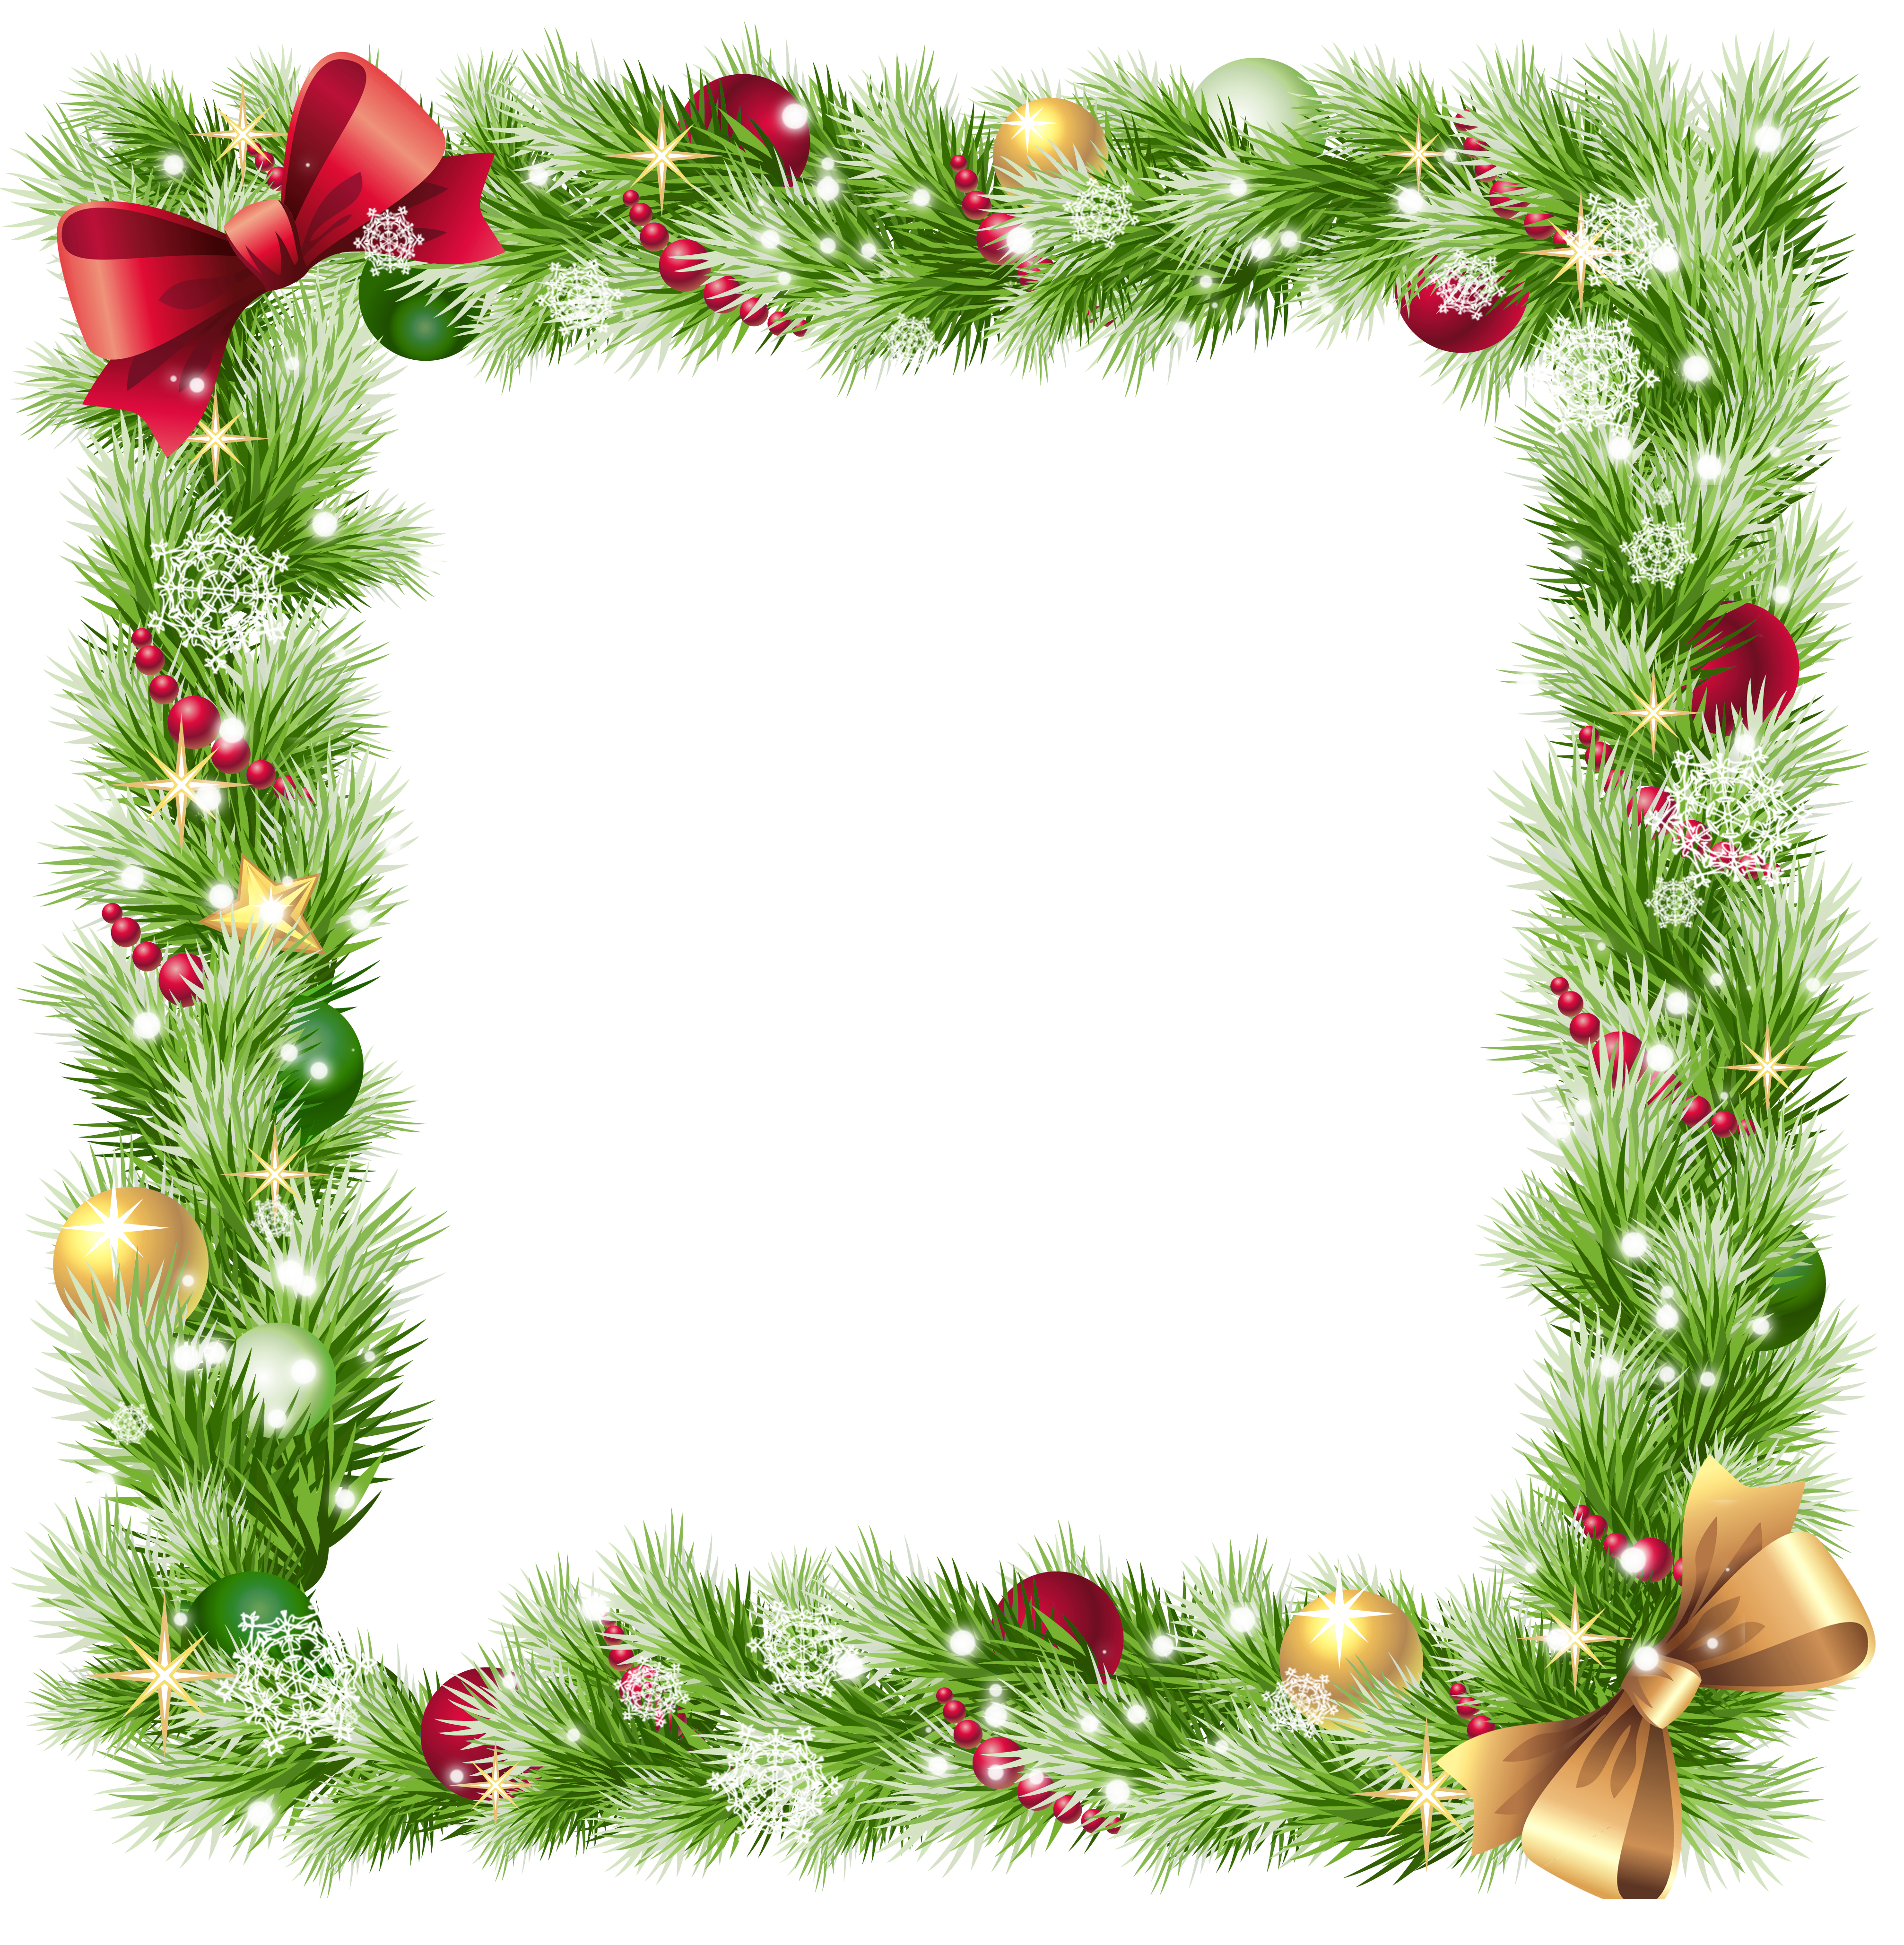 Christmas Border Design Png.Pin By Eliza Neghină On Fisa Christmas Frames Xmas Photo